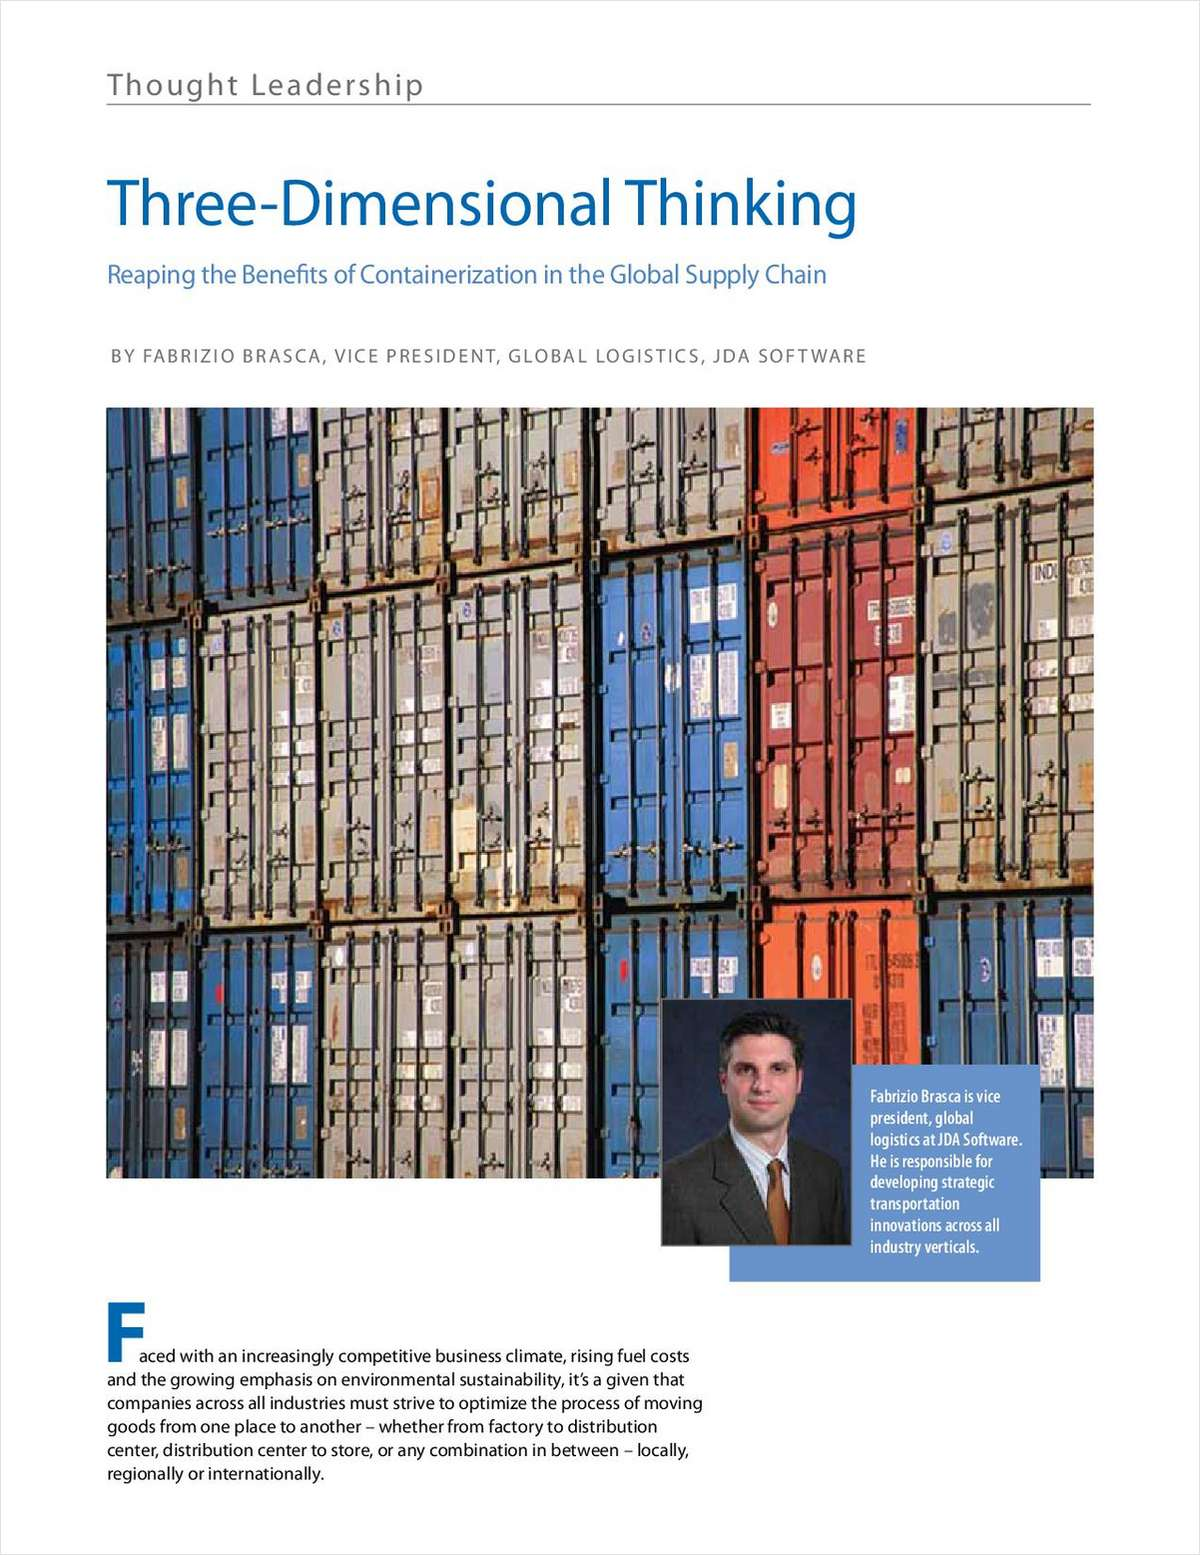 Three Dimensional Thinking: Reaping the Benefits of Containerization in the Global Supply Chain